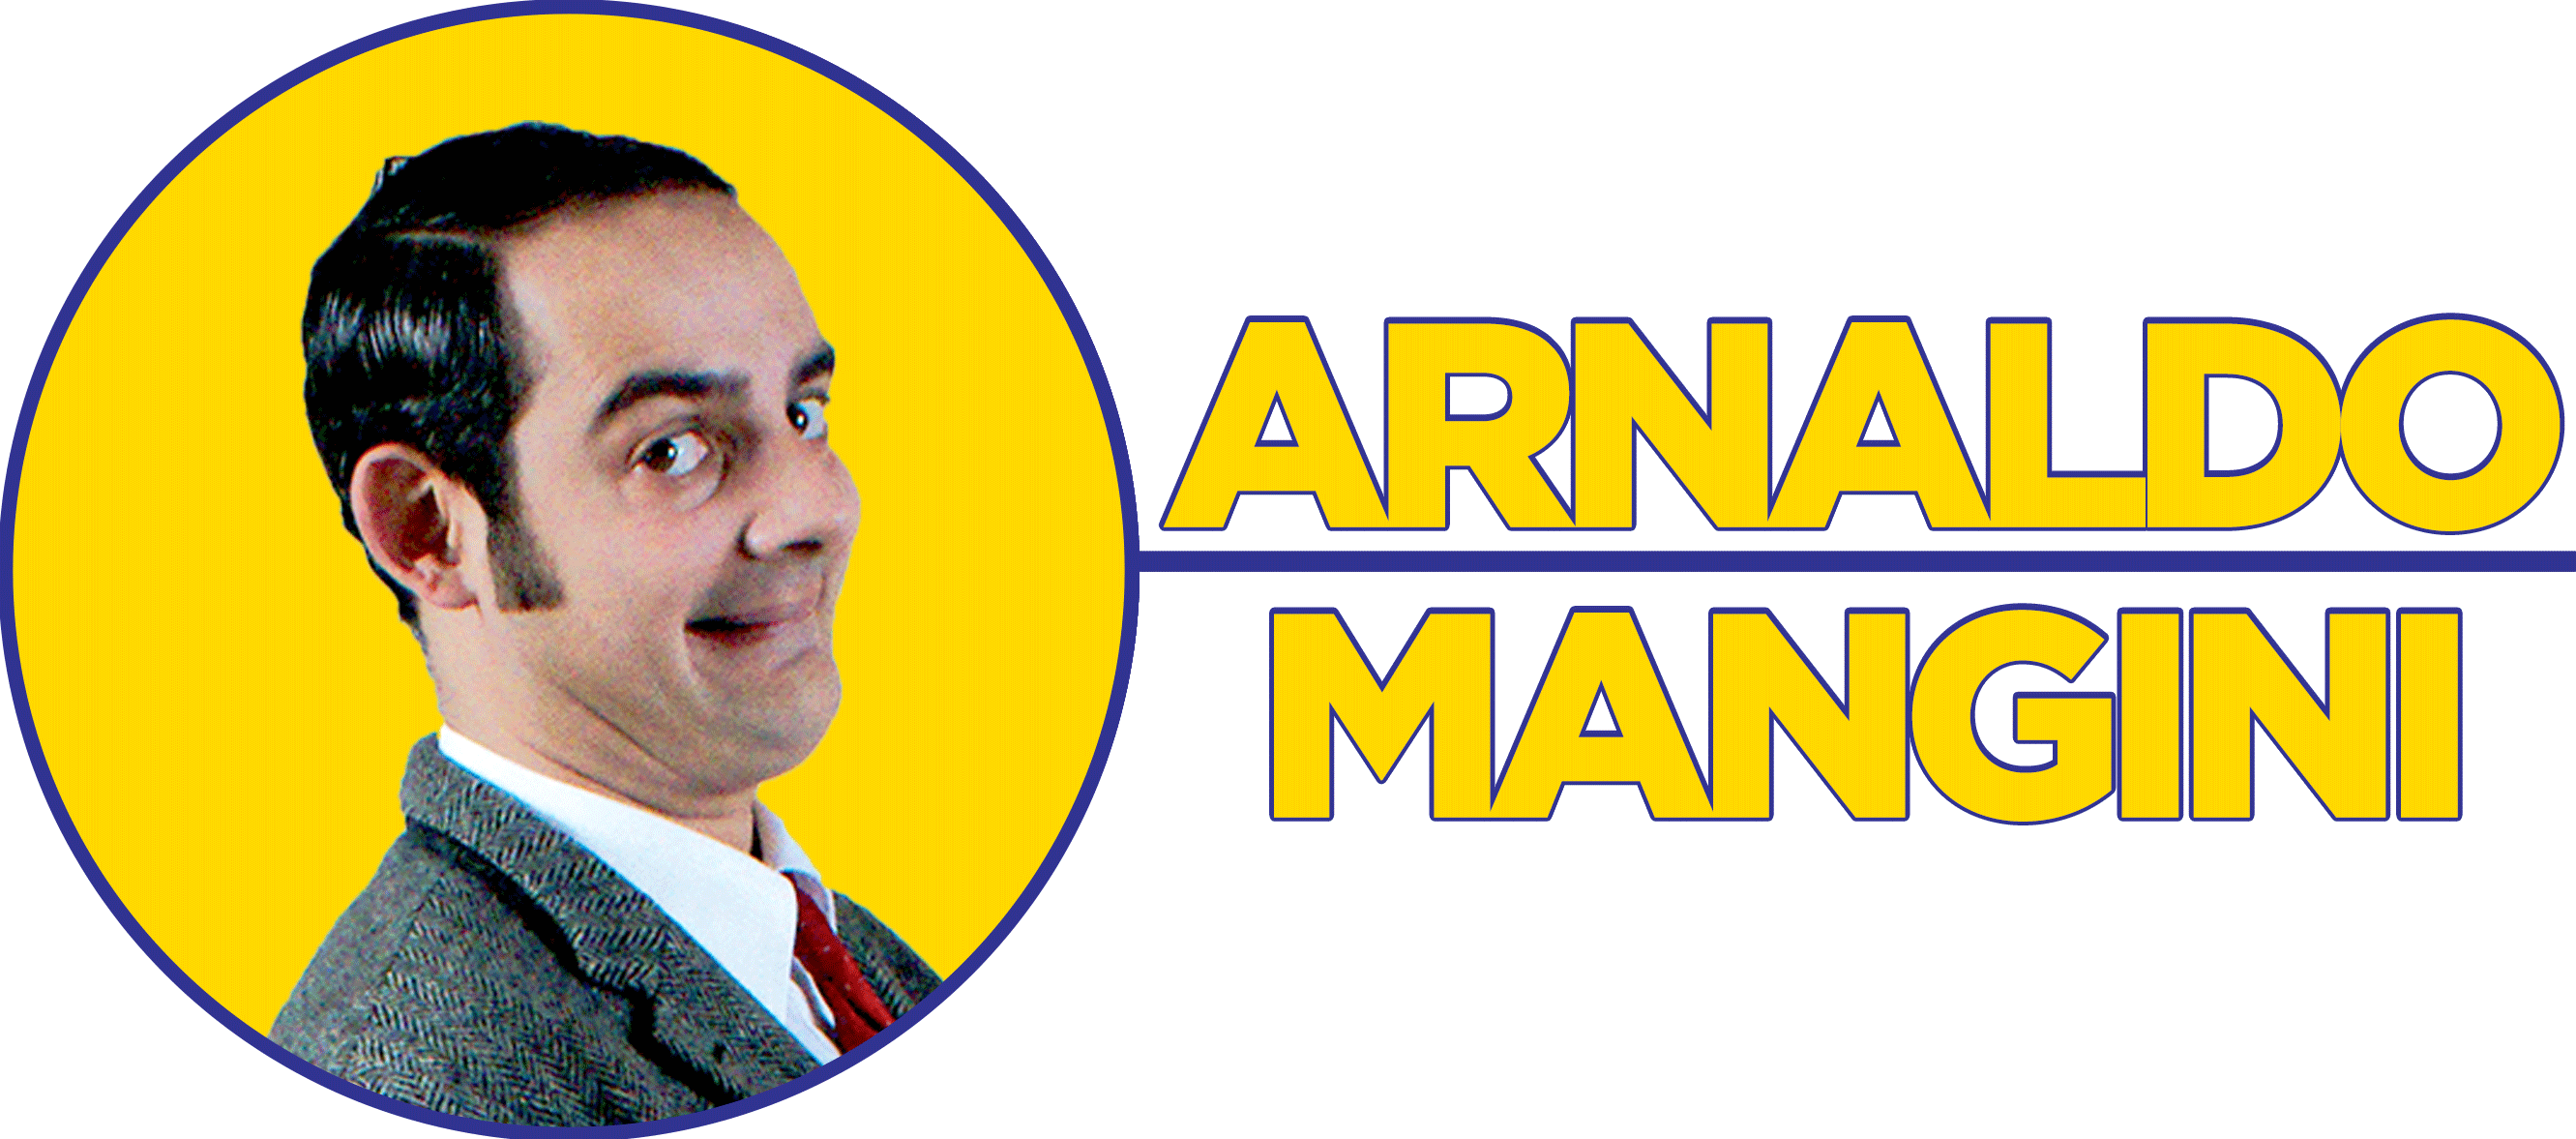 Stampa - Arnaldo Mangini Clown Actor / MrBean Lookalike